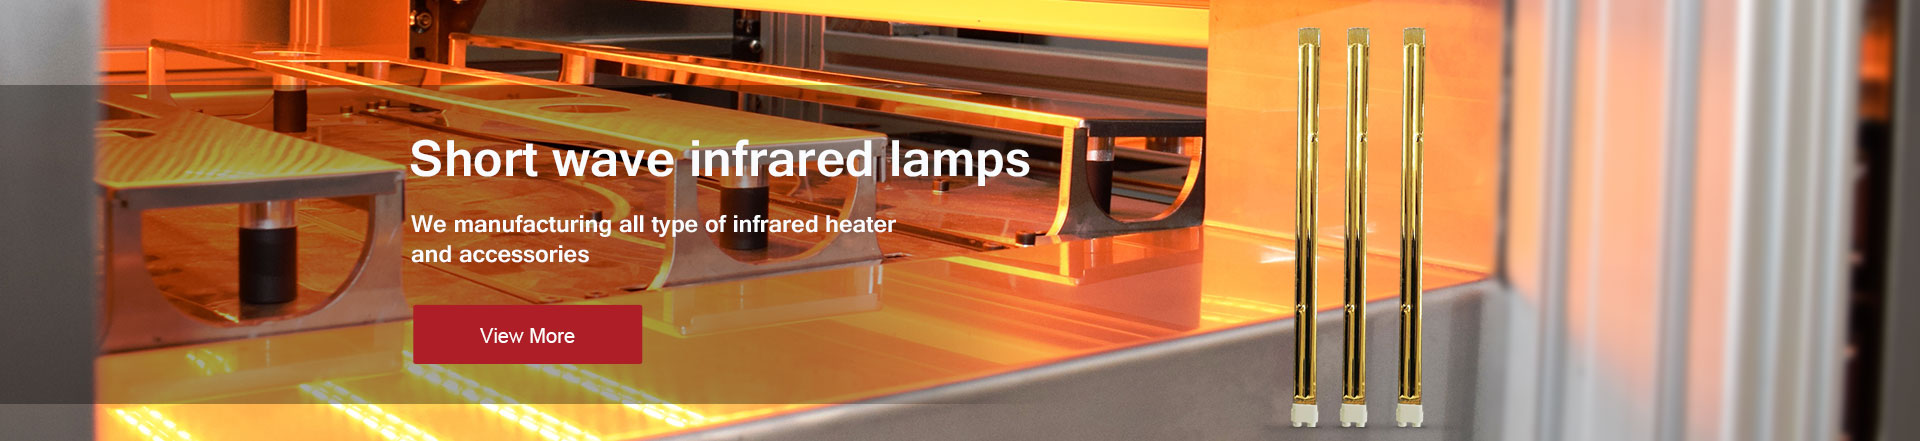 We manufacturing all type of infrared heater and accessories